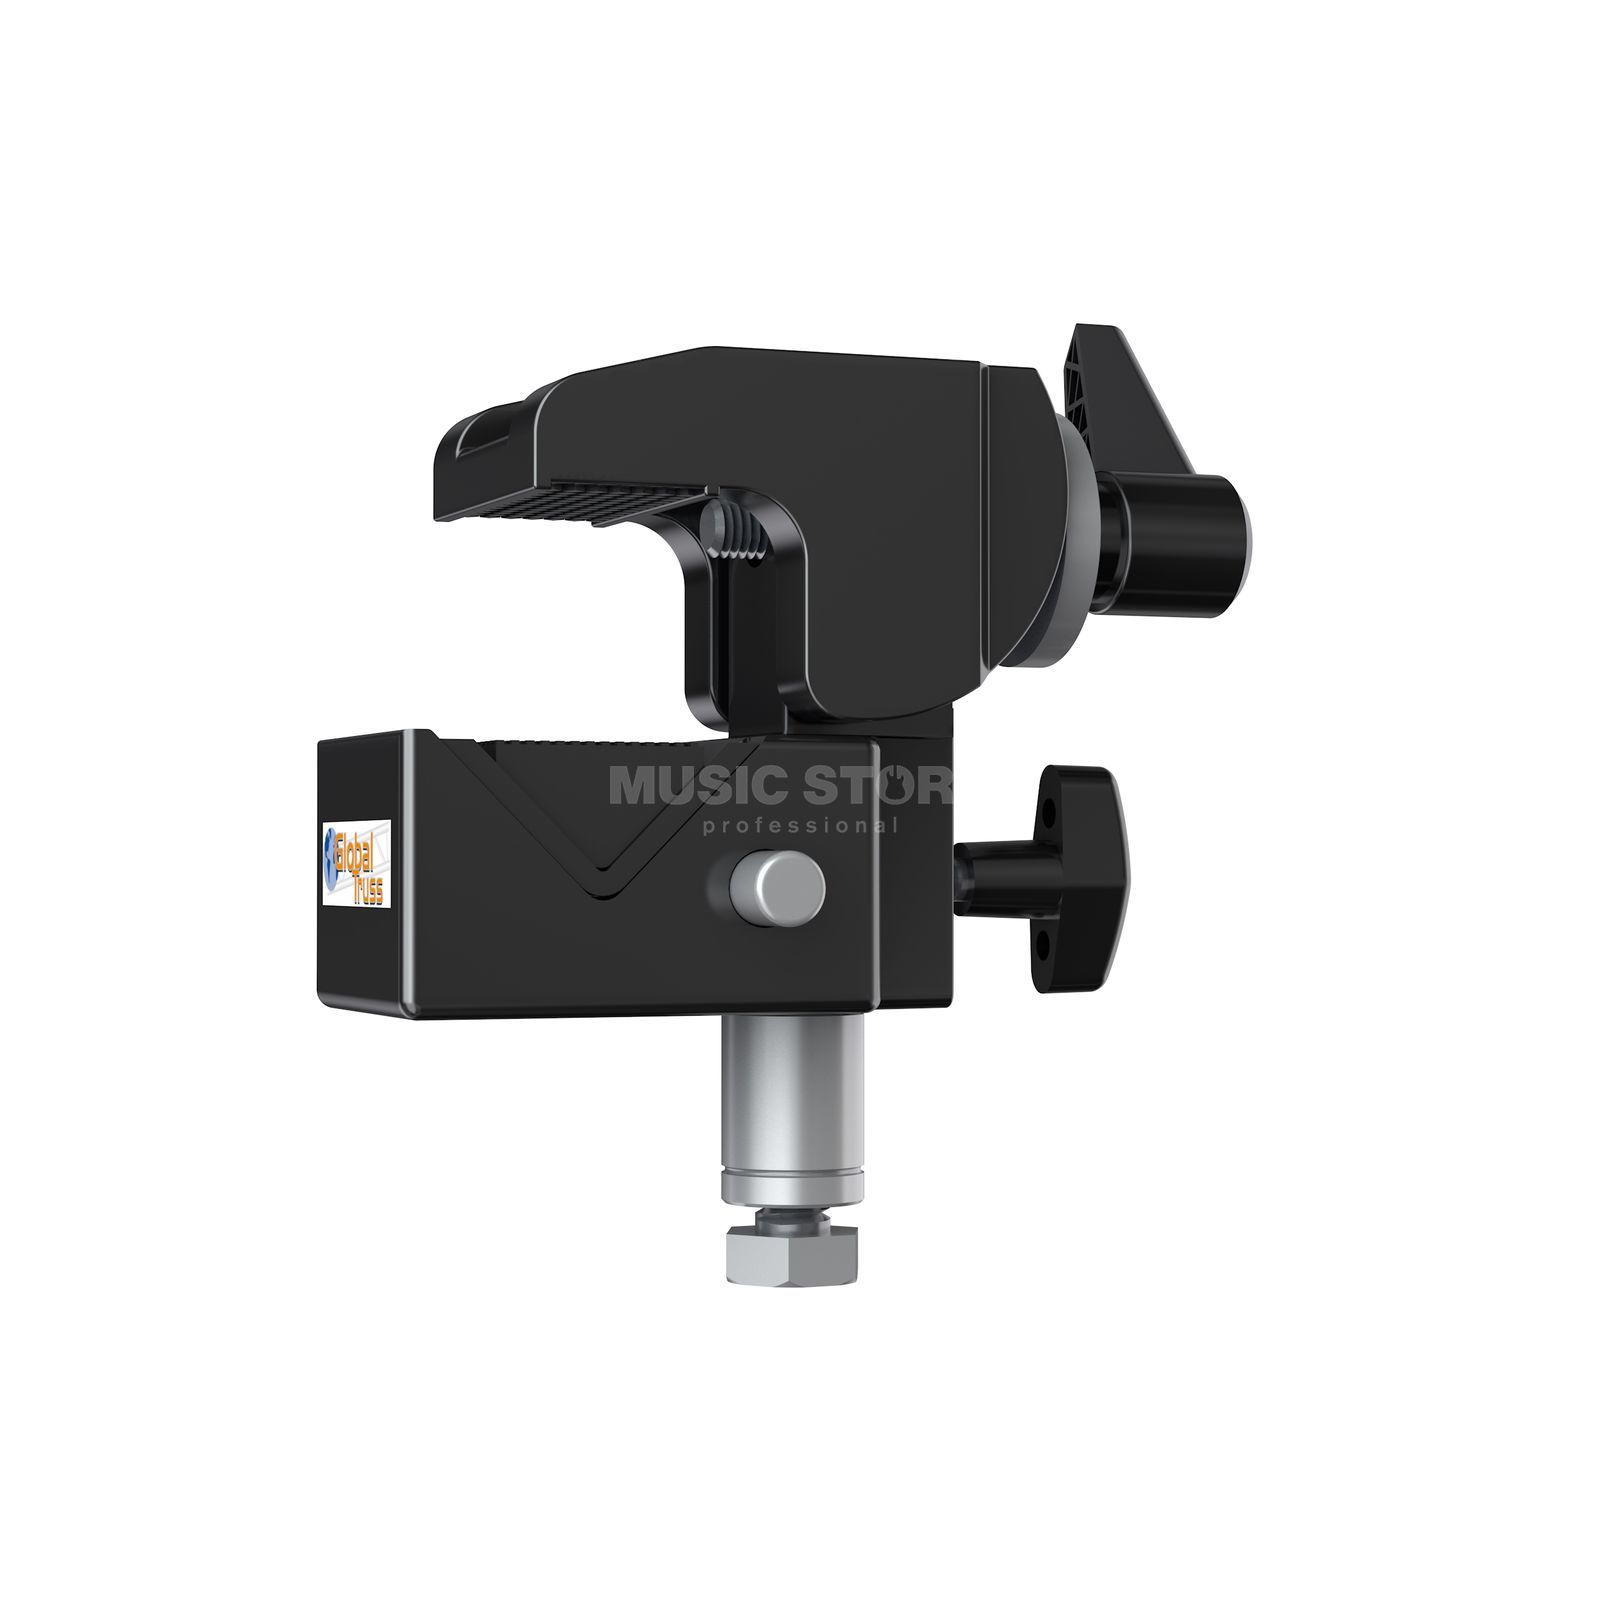 lightmaXX Super Clamp 50mm with adapter plate and pin M8 Изображение товара